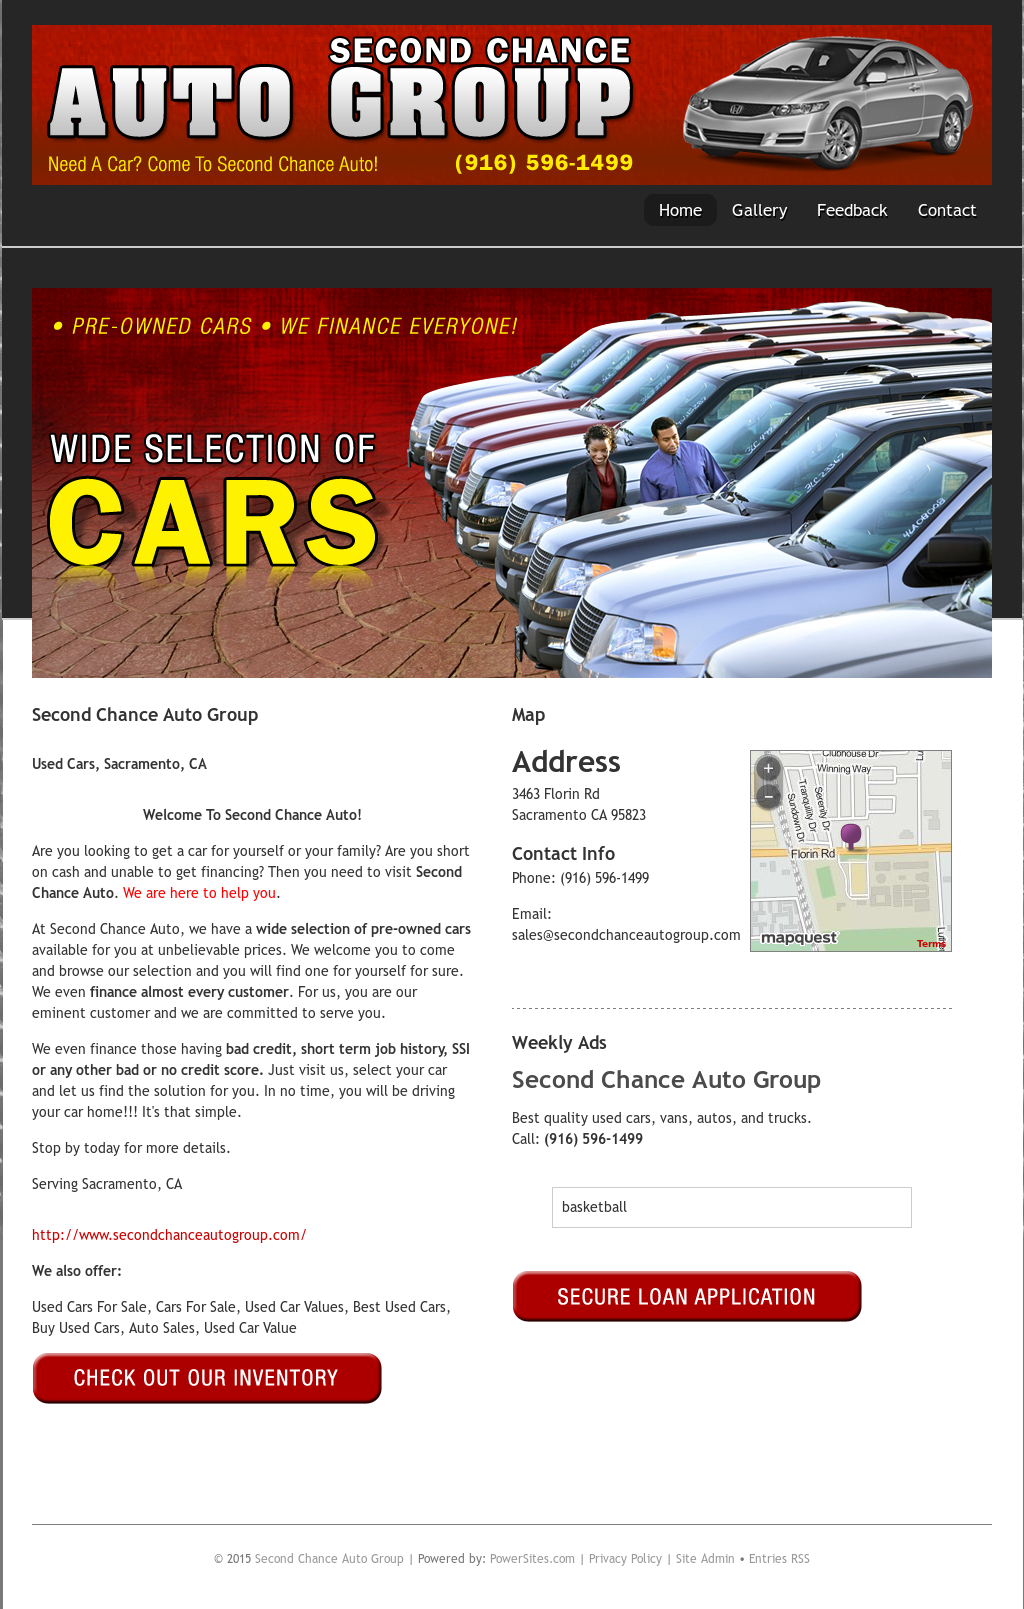 Second Chance Auto Group Competitors, Revenue and Employees - Owler Company Profile